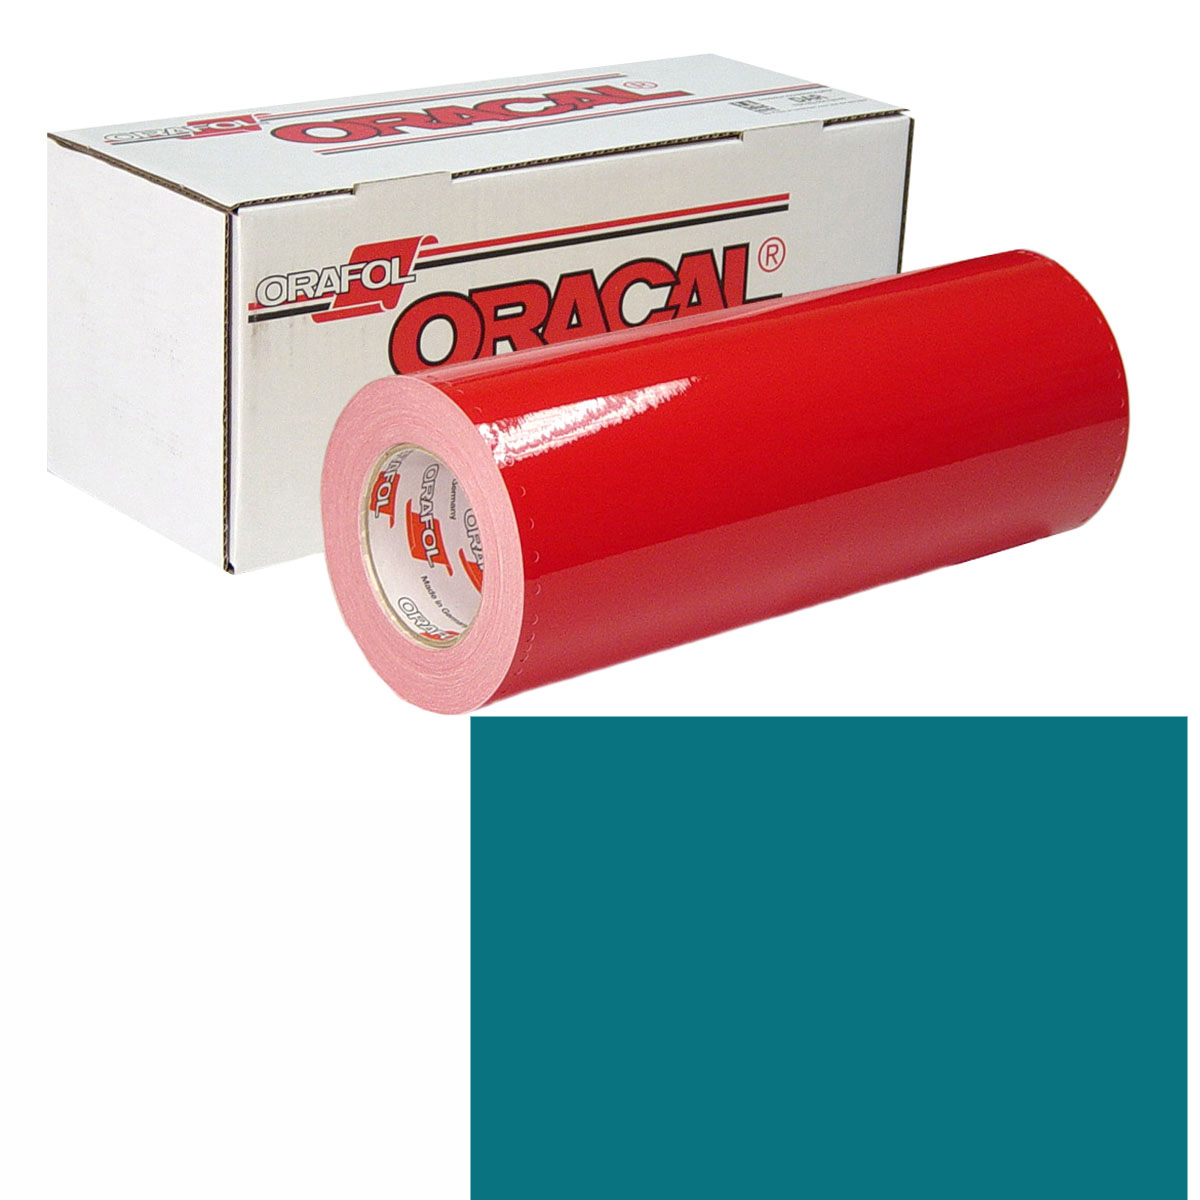 ORACAL 951M 30In X 10Yd 199 Turquoise Met